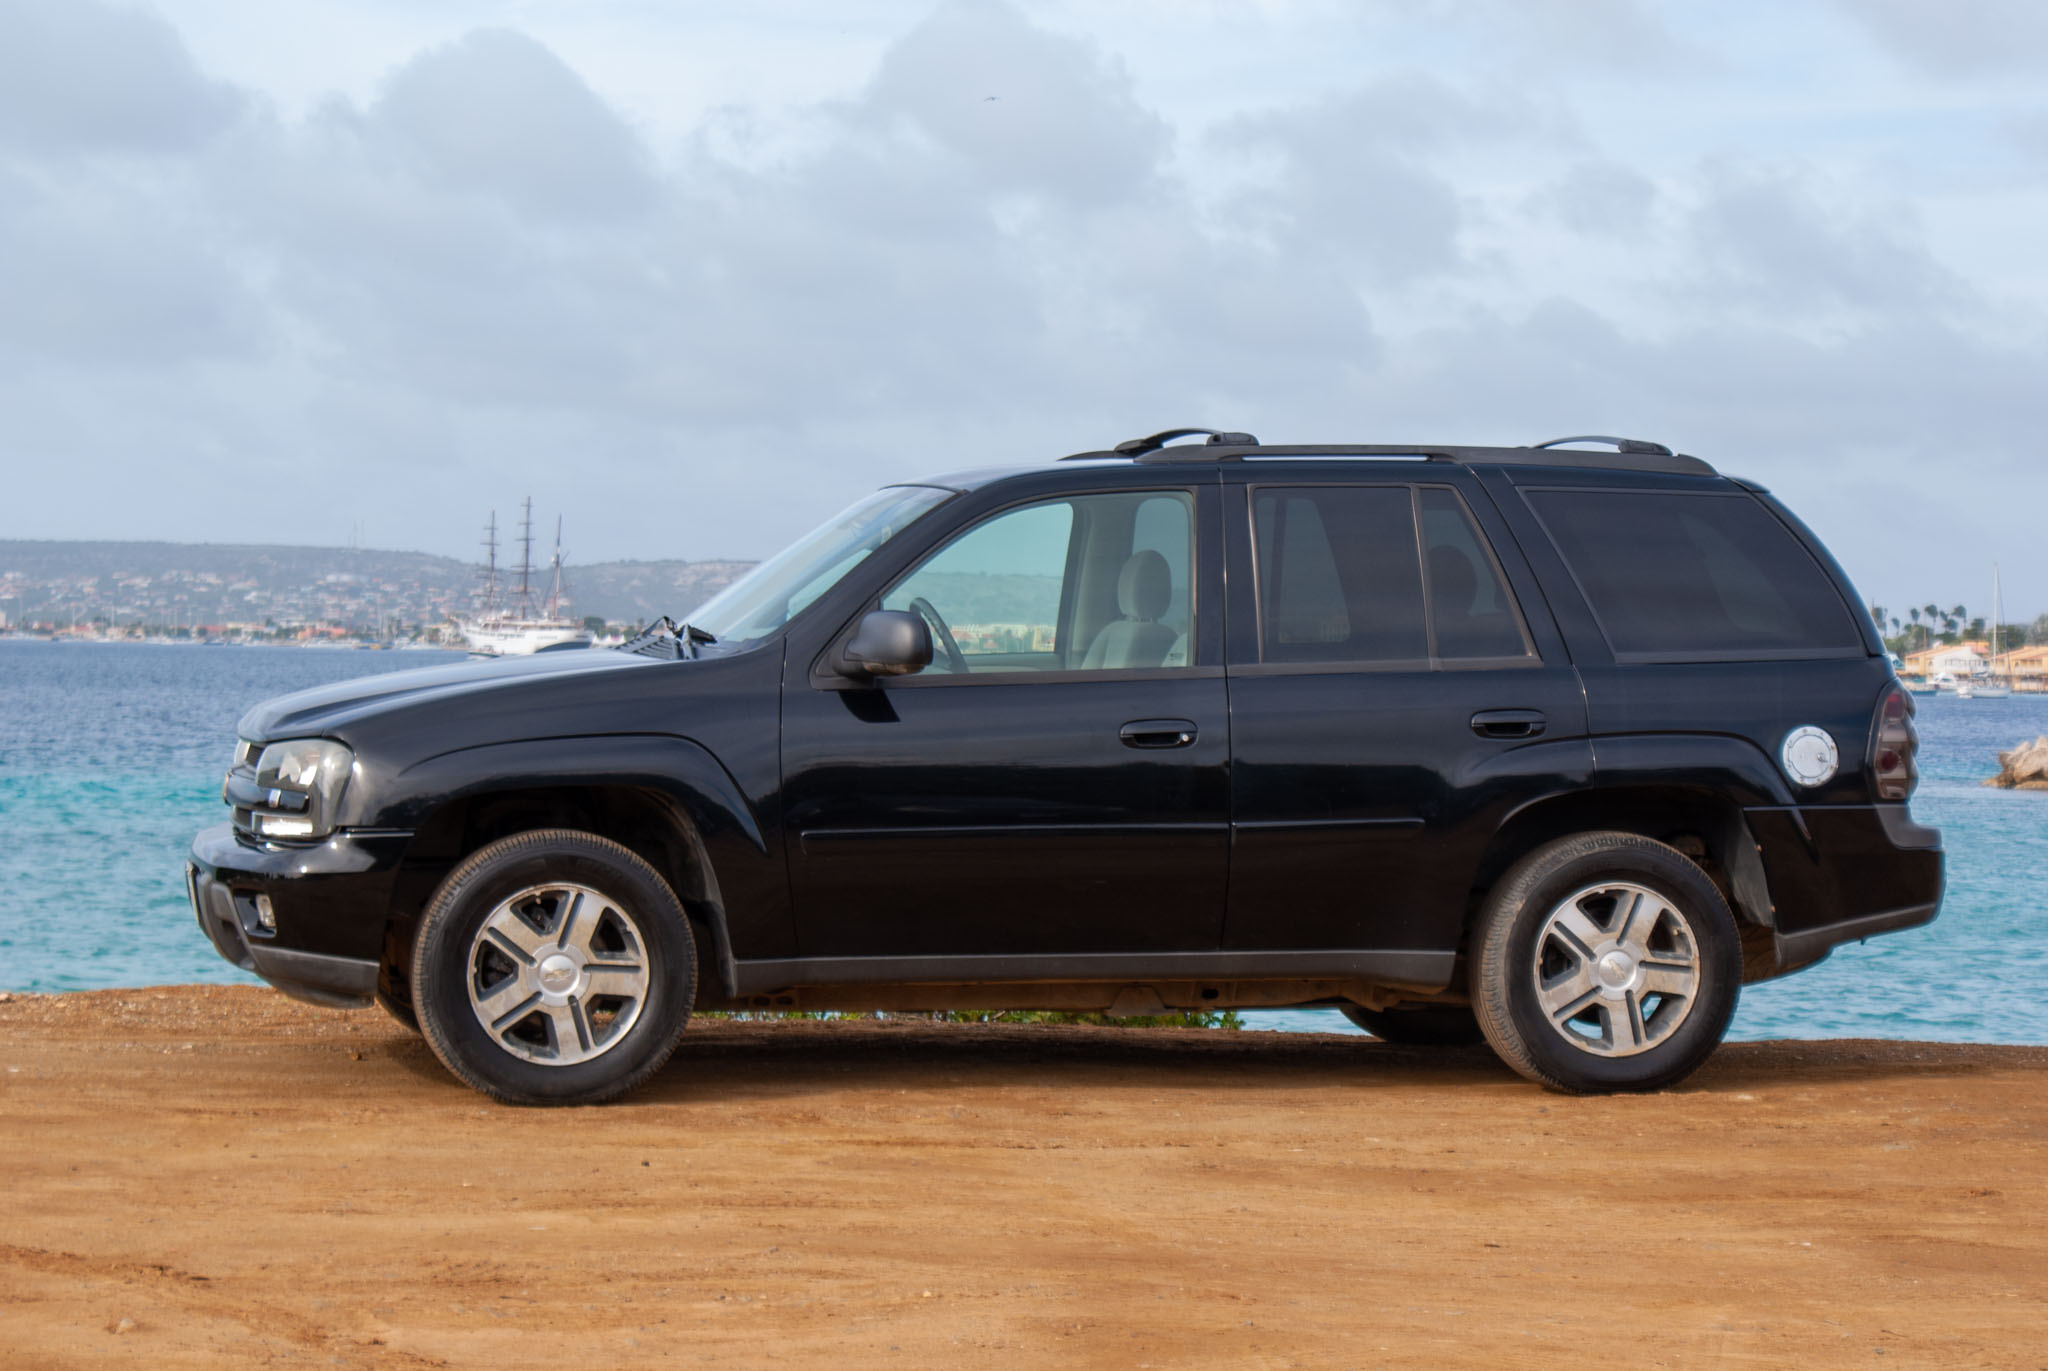 Tropical Car rental Bonaire - Chevrolet Trailblazer black for rent